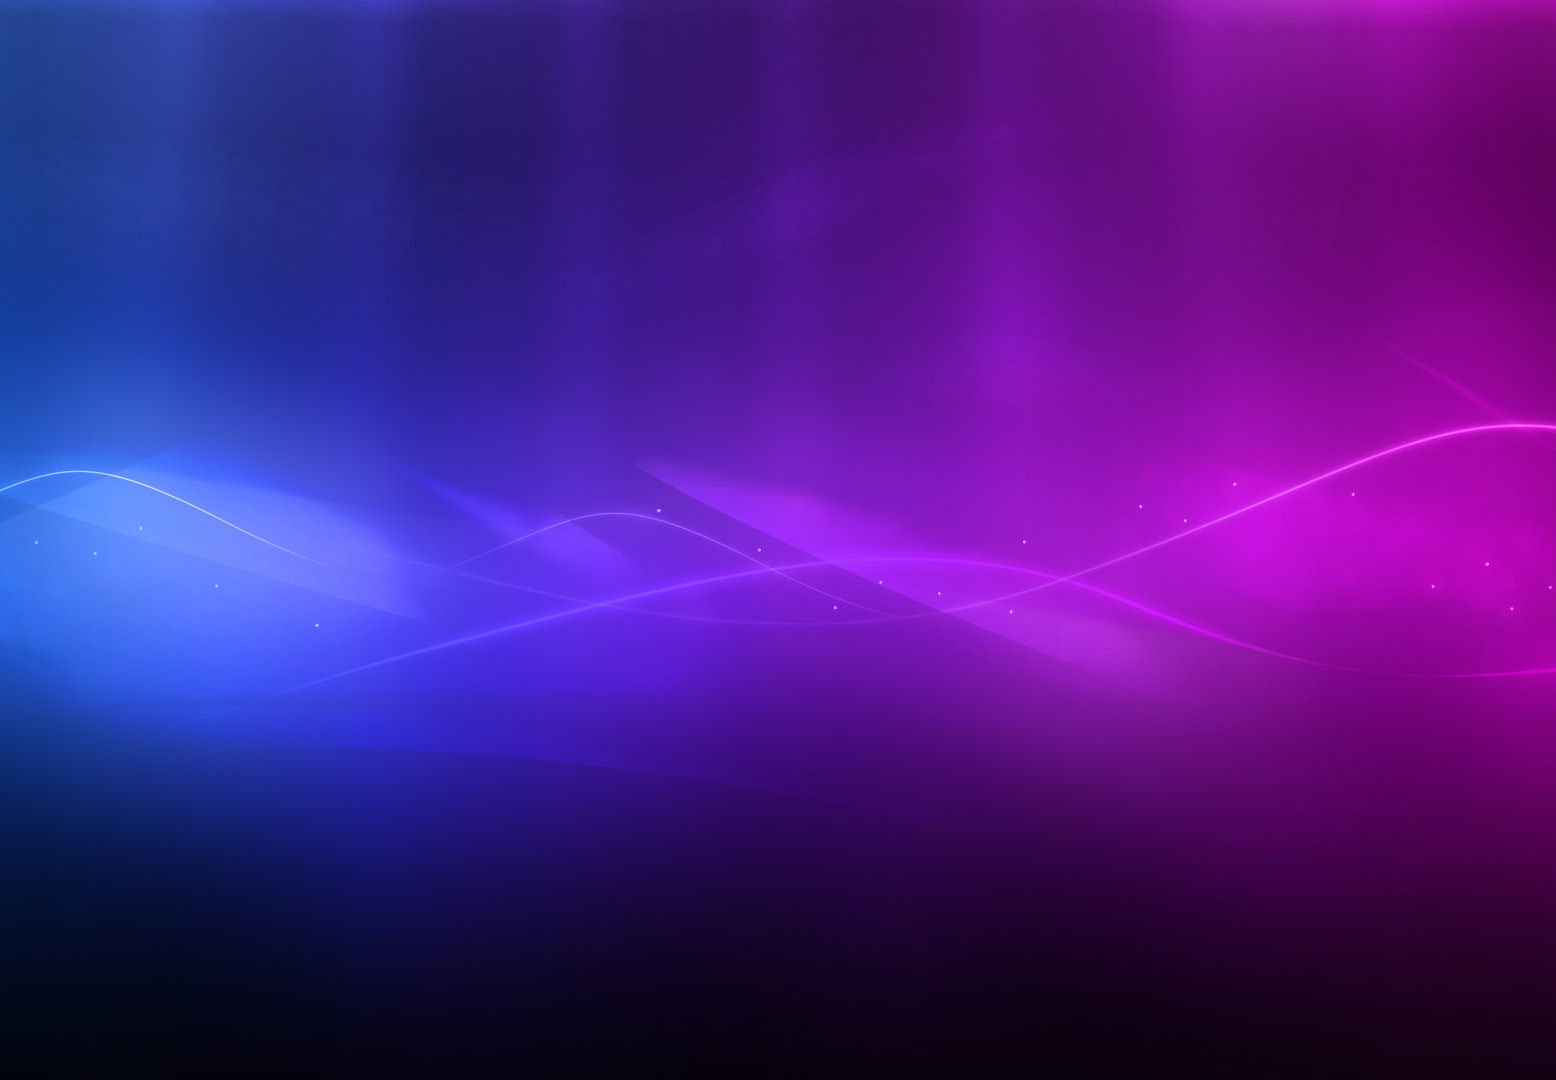 Fantastic Pink & Blue Background For Free